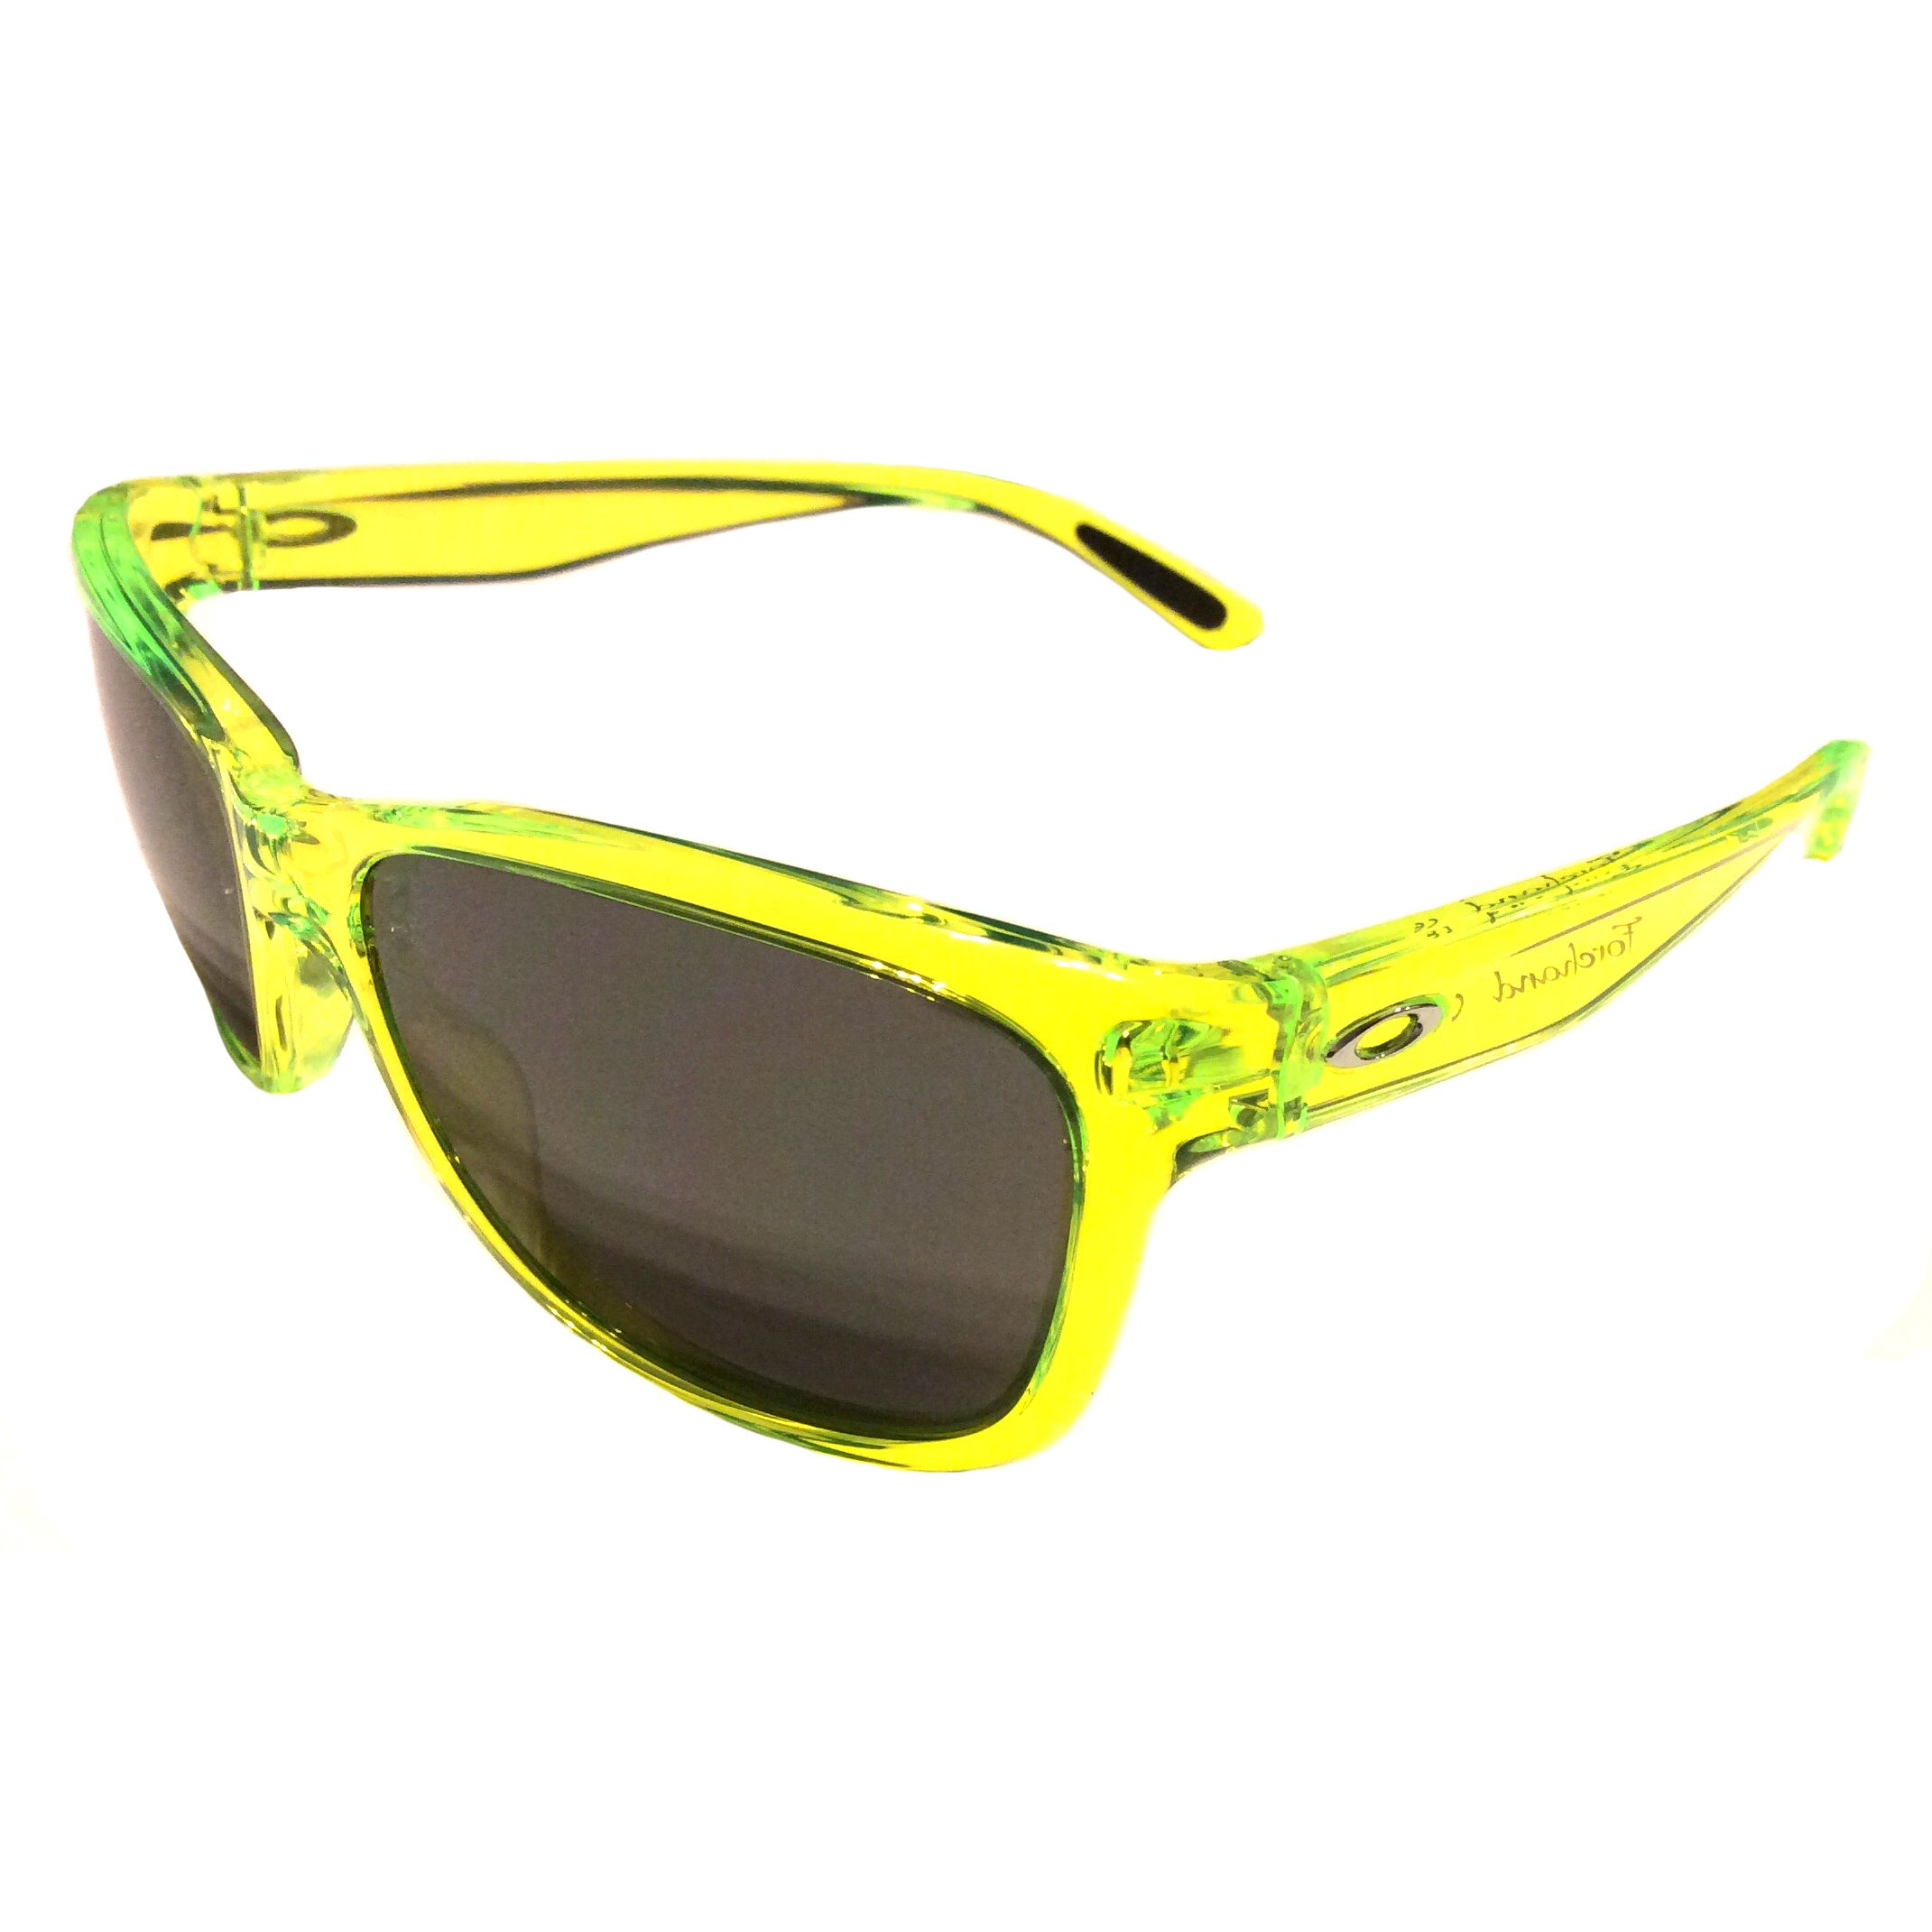 Yellow Frame Sunglasses  oakley forehand sunglasses neon yellow frame black iridium